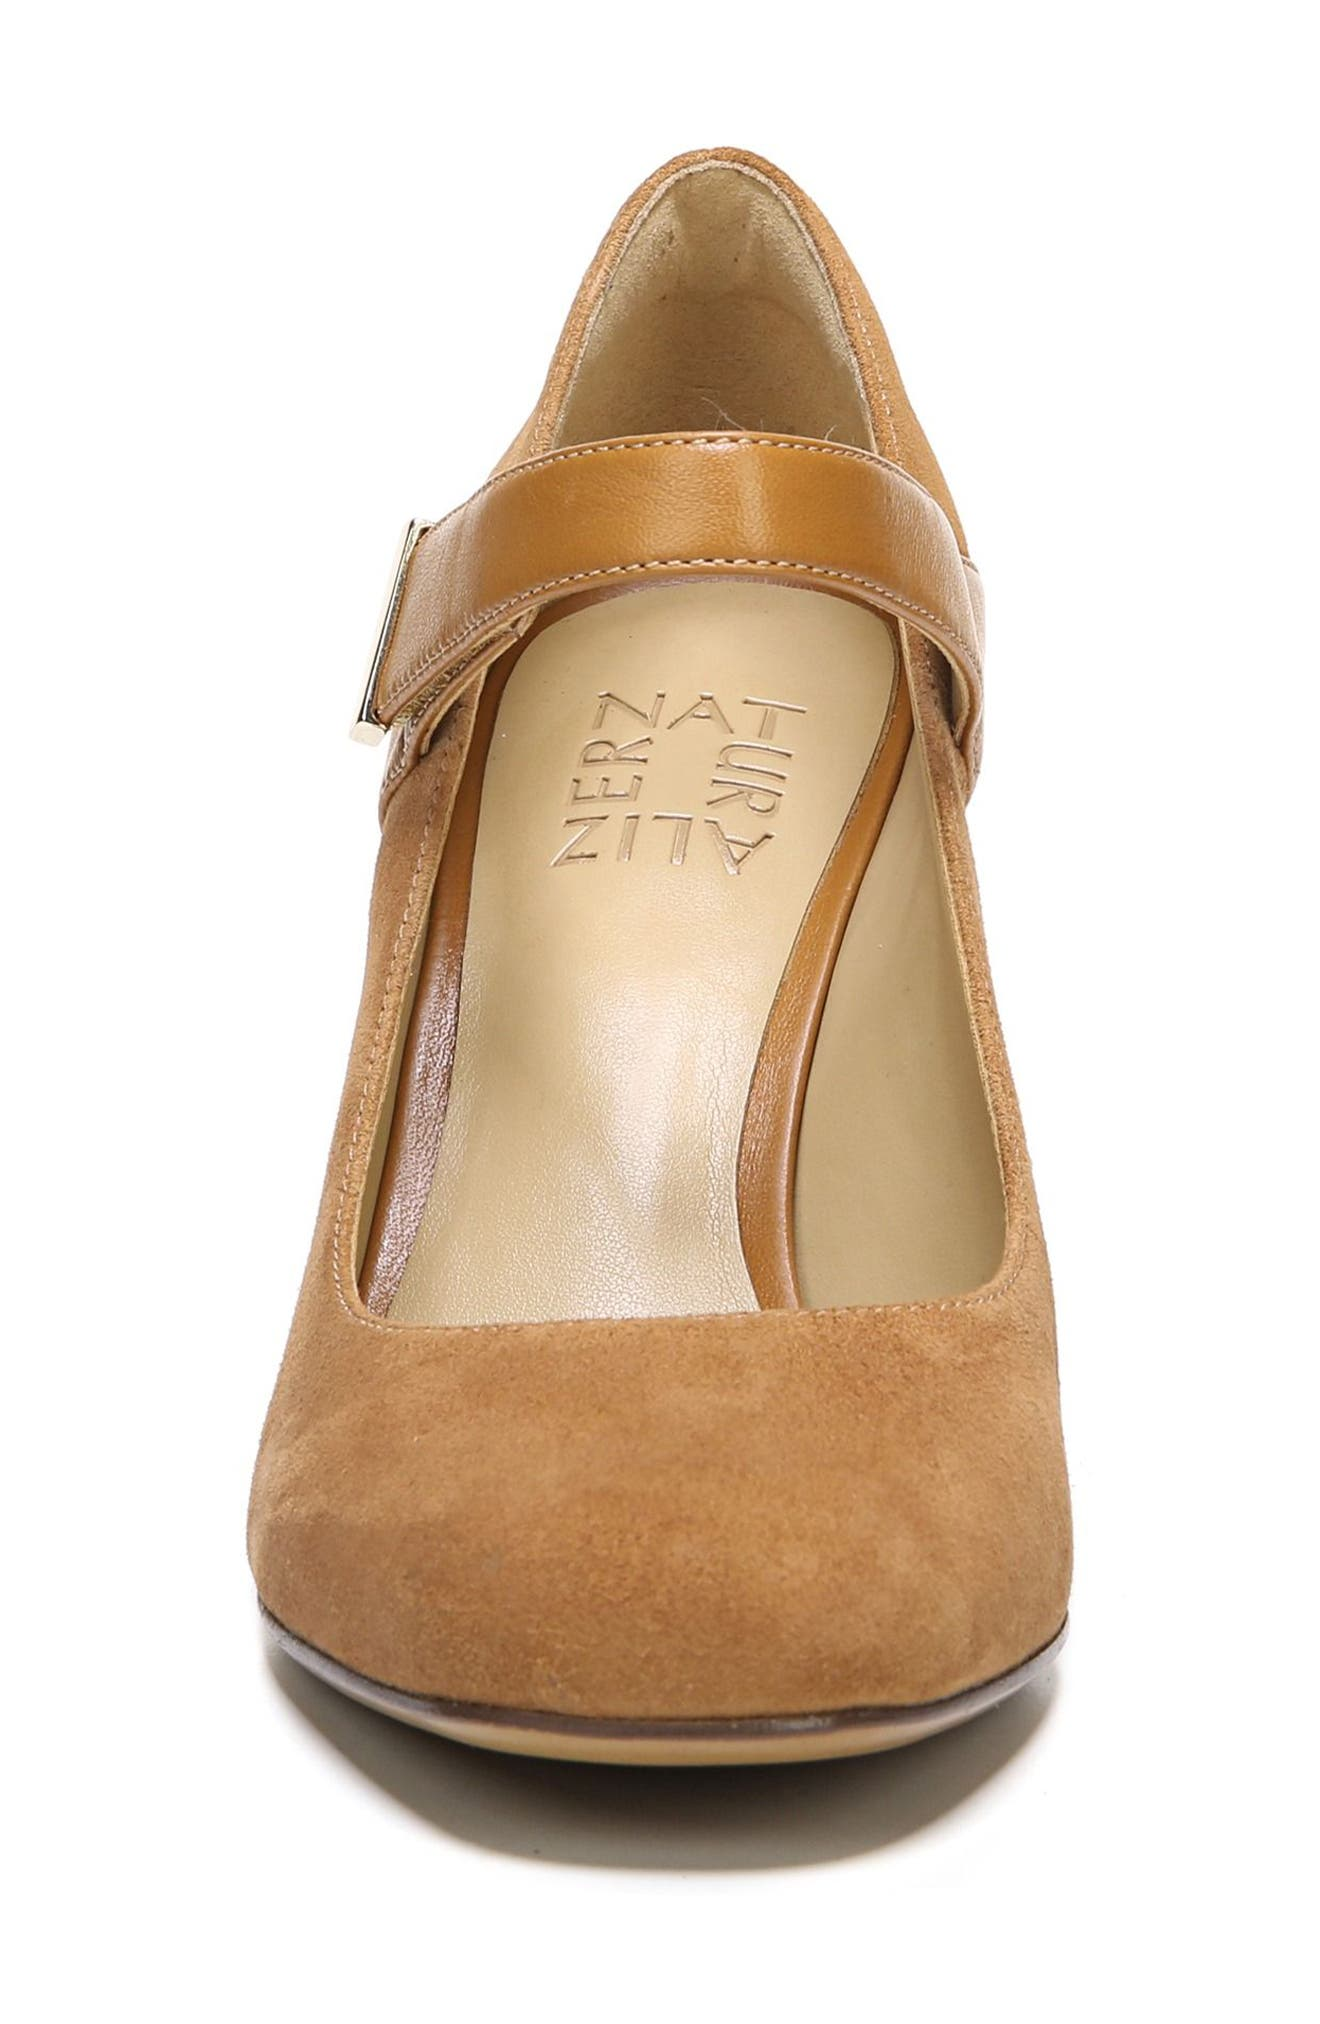 Reva Mary Jane Pump,                             Alternate thumbnail 4, color,                             Camelot Suede